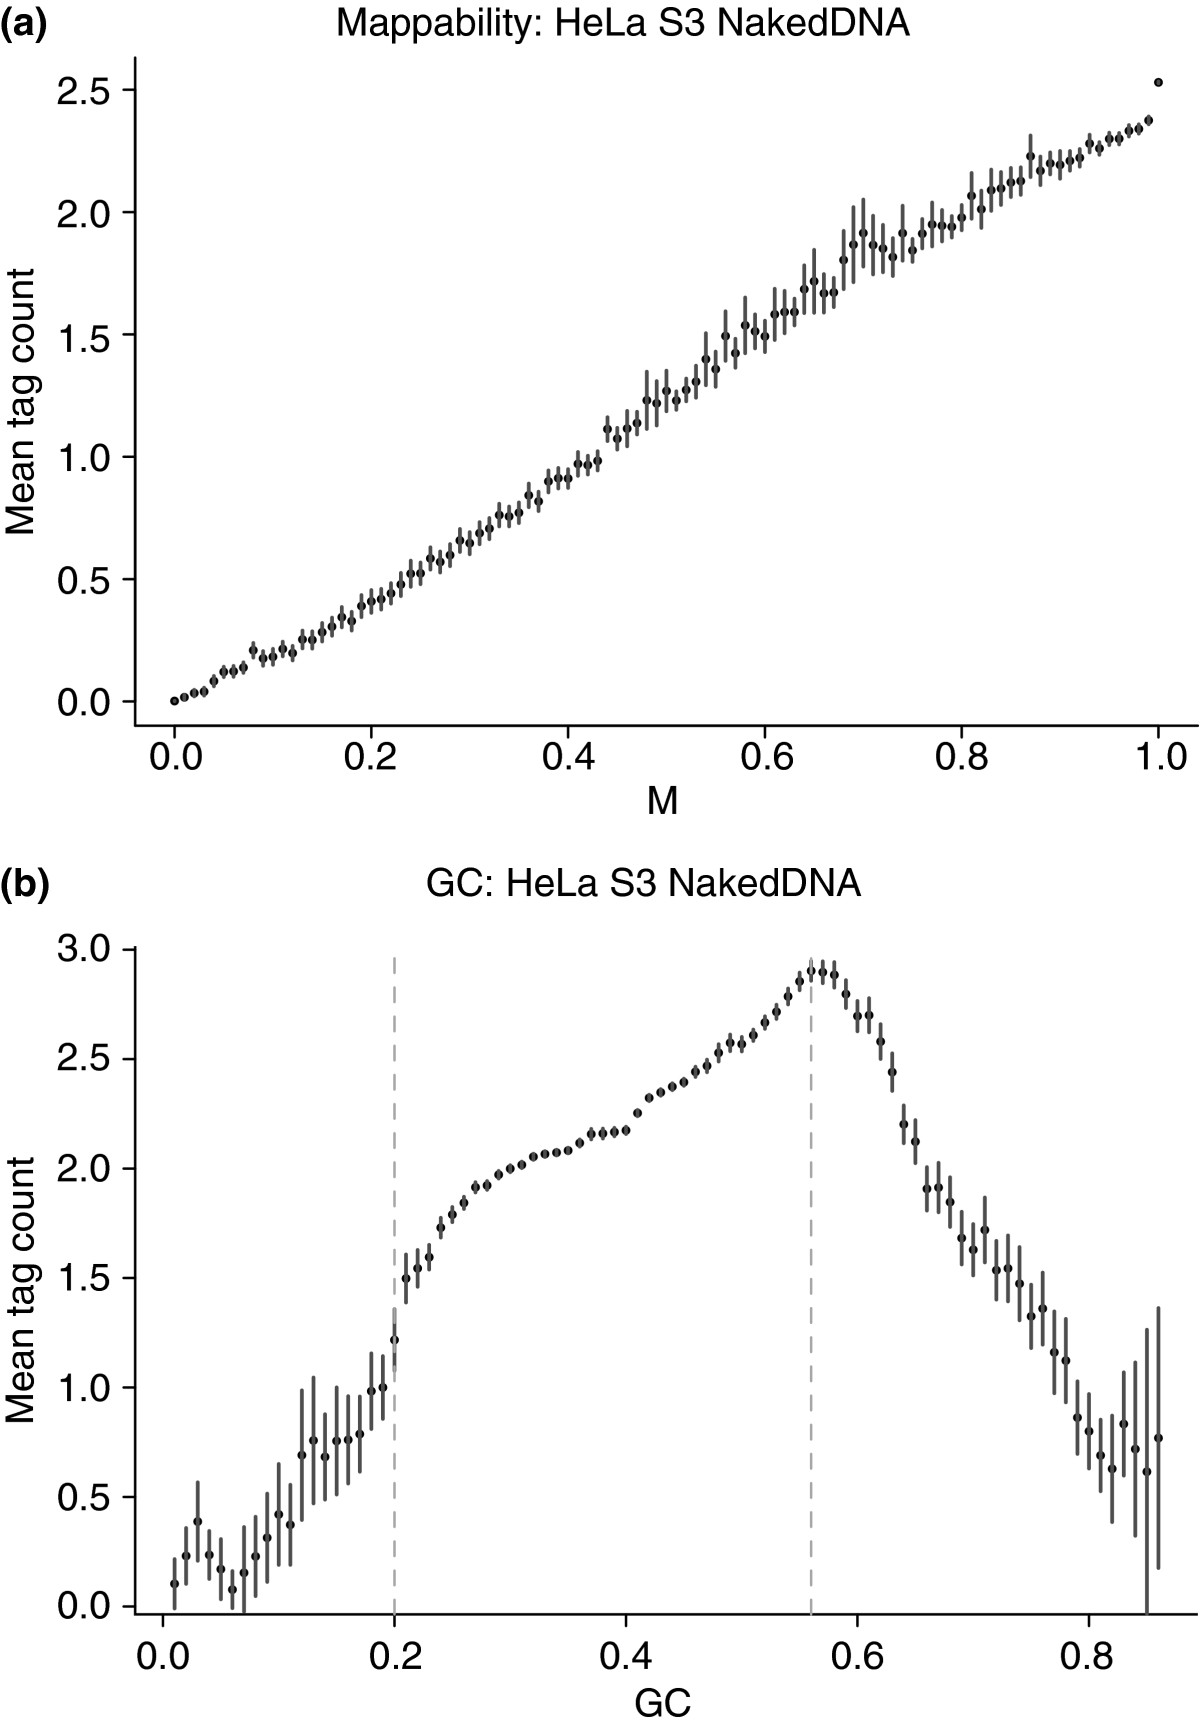 http://static-content.springer.com/image/art%3A10.1186%2Fgm208/MediaObjects/13073_2010_Article_208_Fig2_HTML.jpg